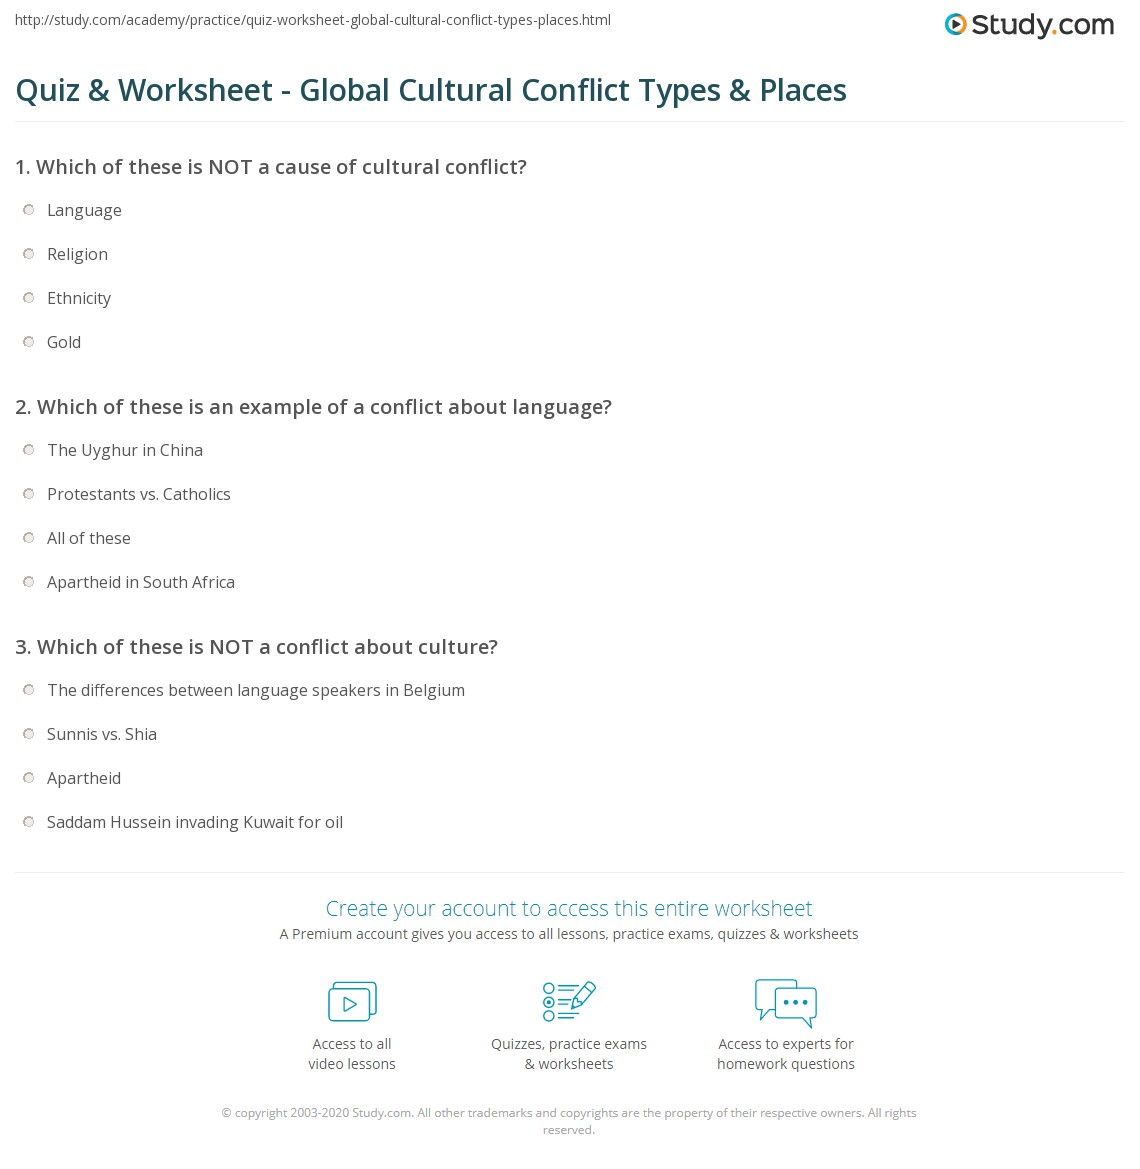 worksheet A Global Conflict Worksheet Answers quiz worksheet global cultural conflict types places study com print worldwide locations worksheet